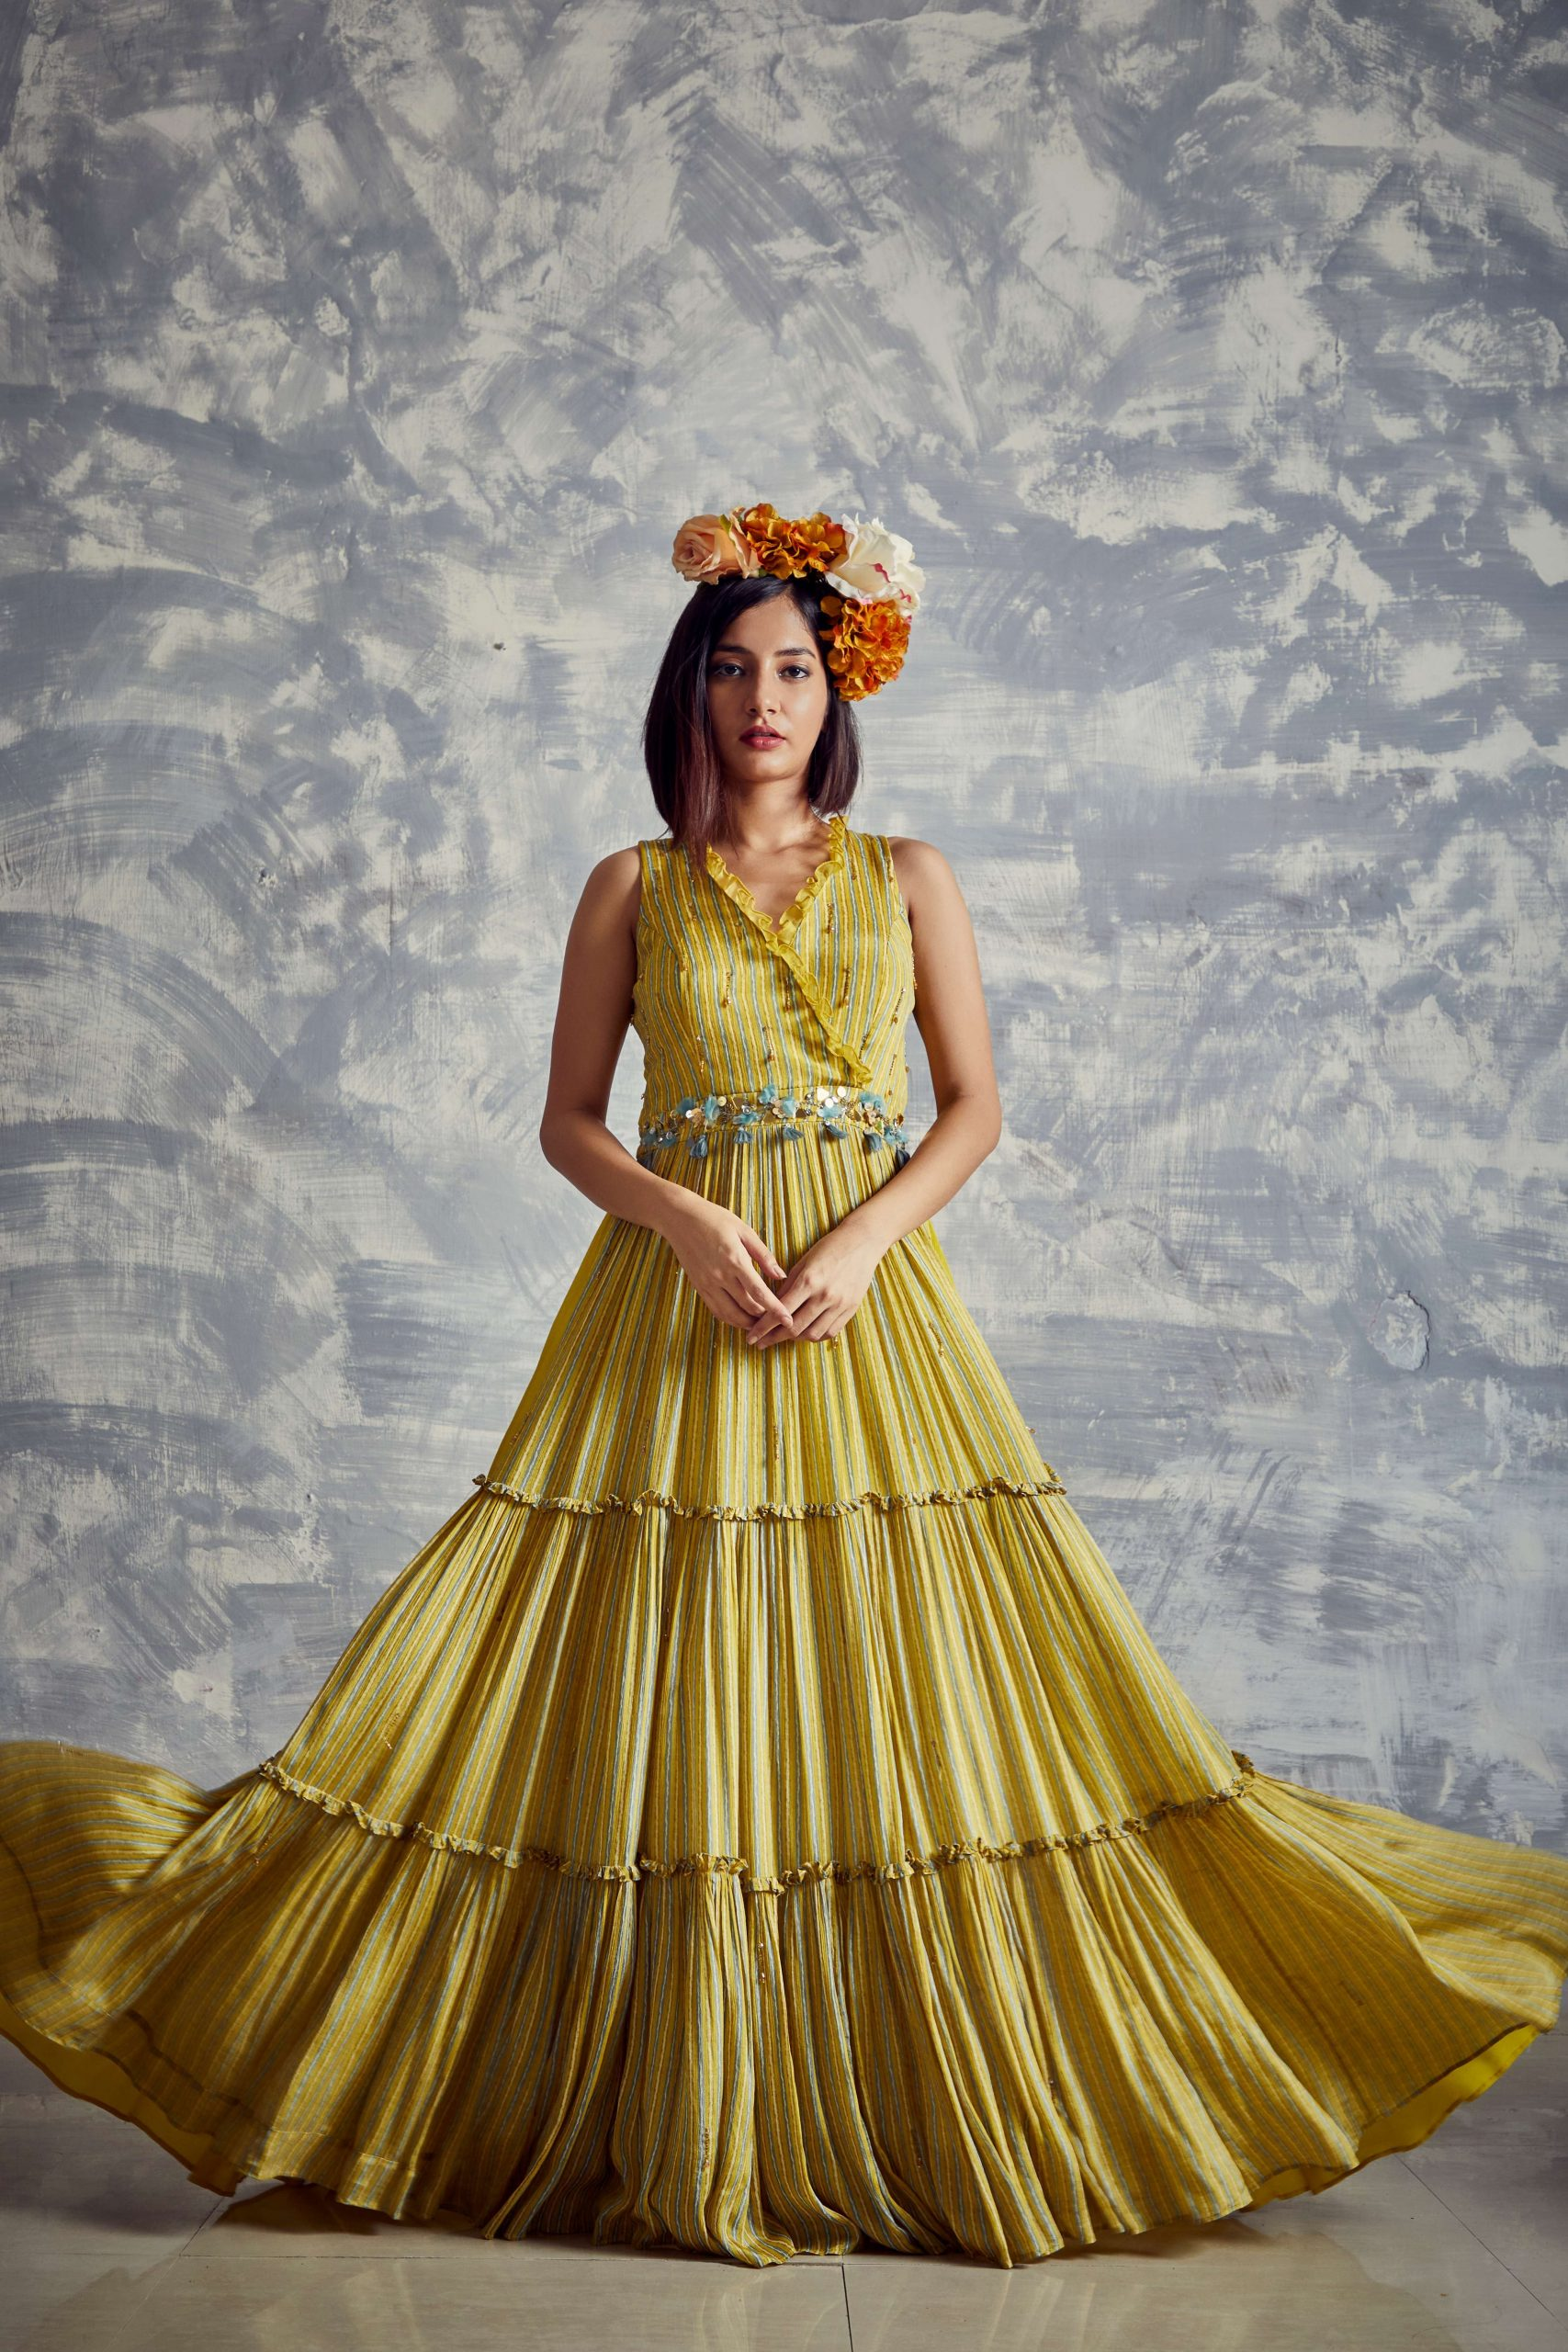 Corn yellow Printed Tiered long dress made in natural fibre flowy chiffon with mosaic embroidery on belt